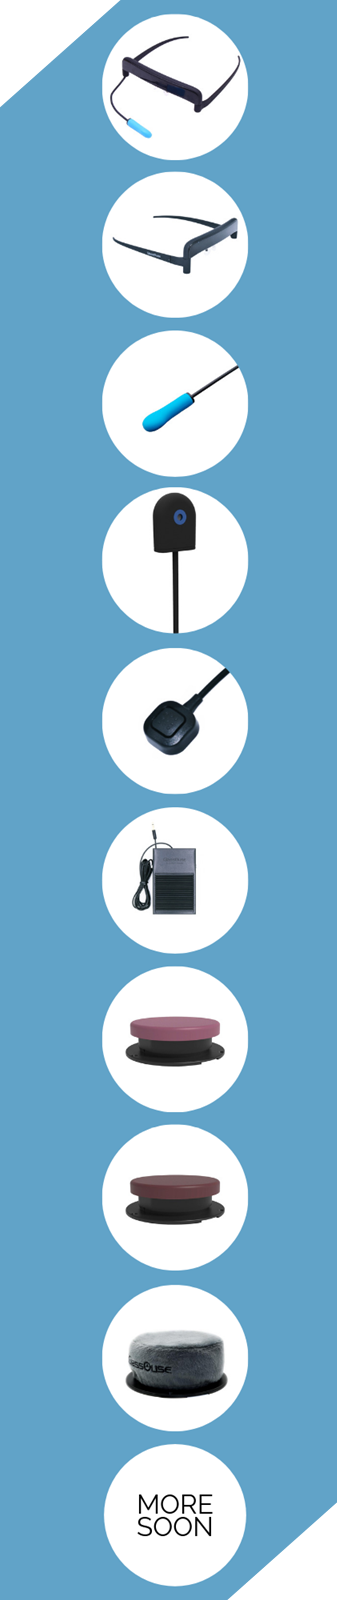 glassouse assistive device & g-switch series